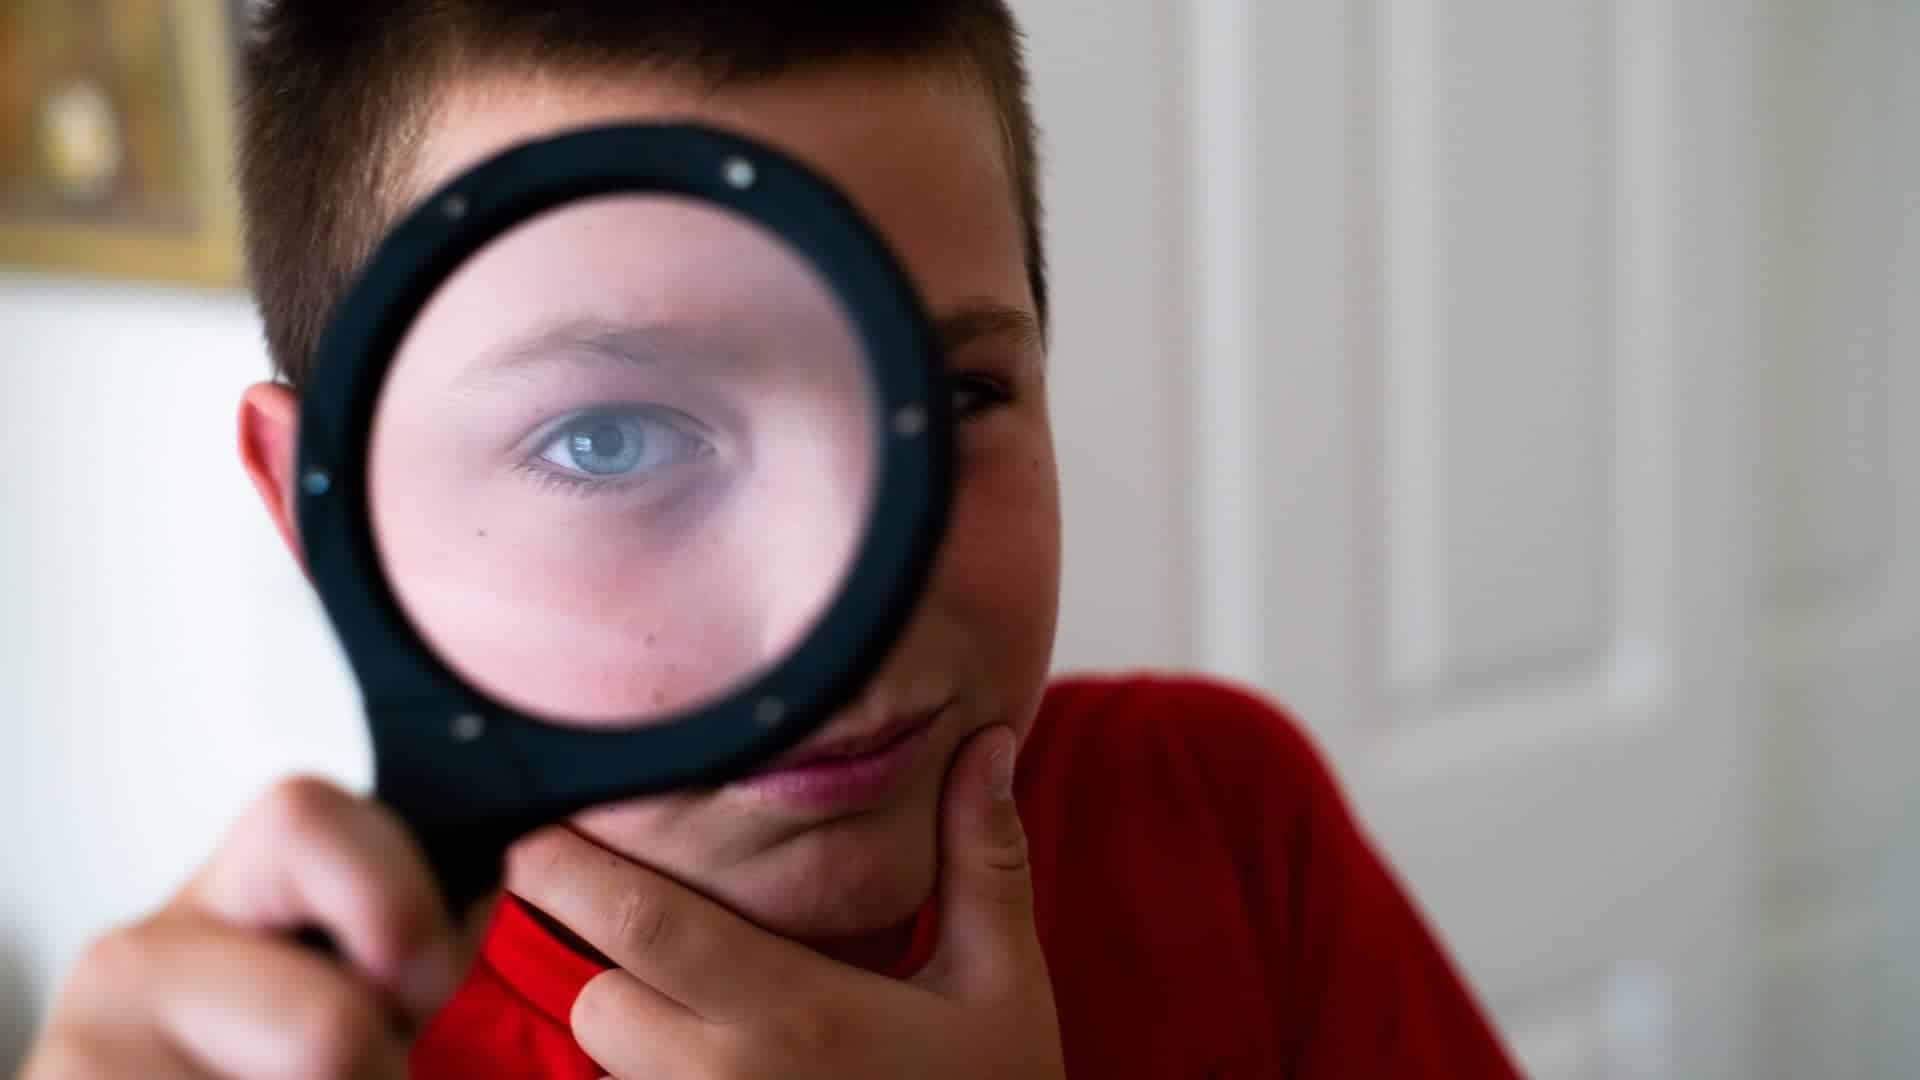 still of boy looking through looking glass